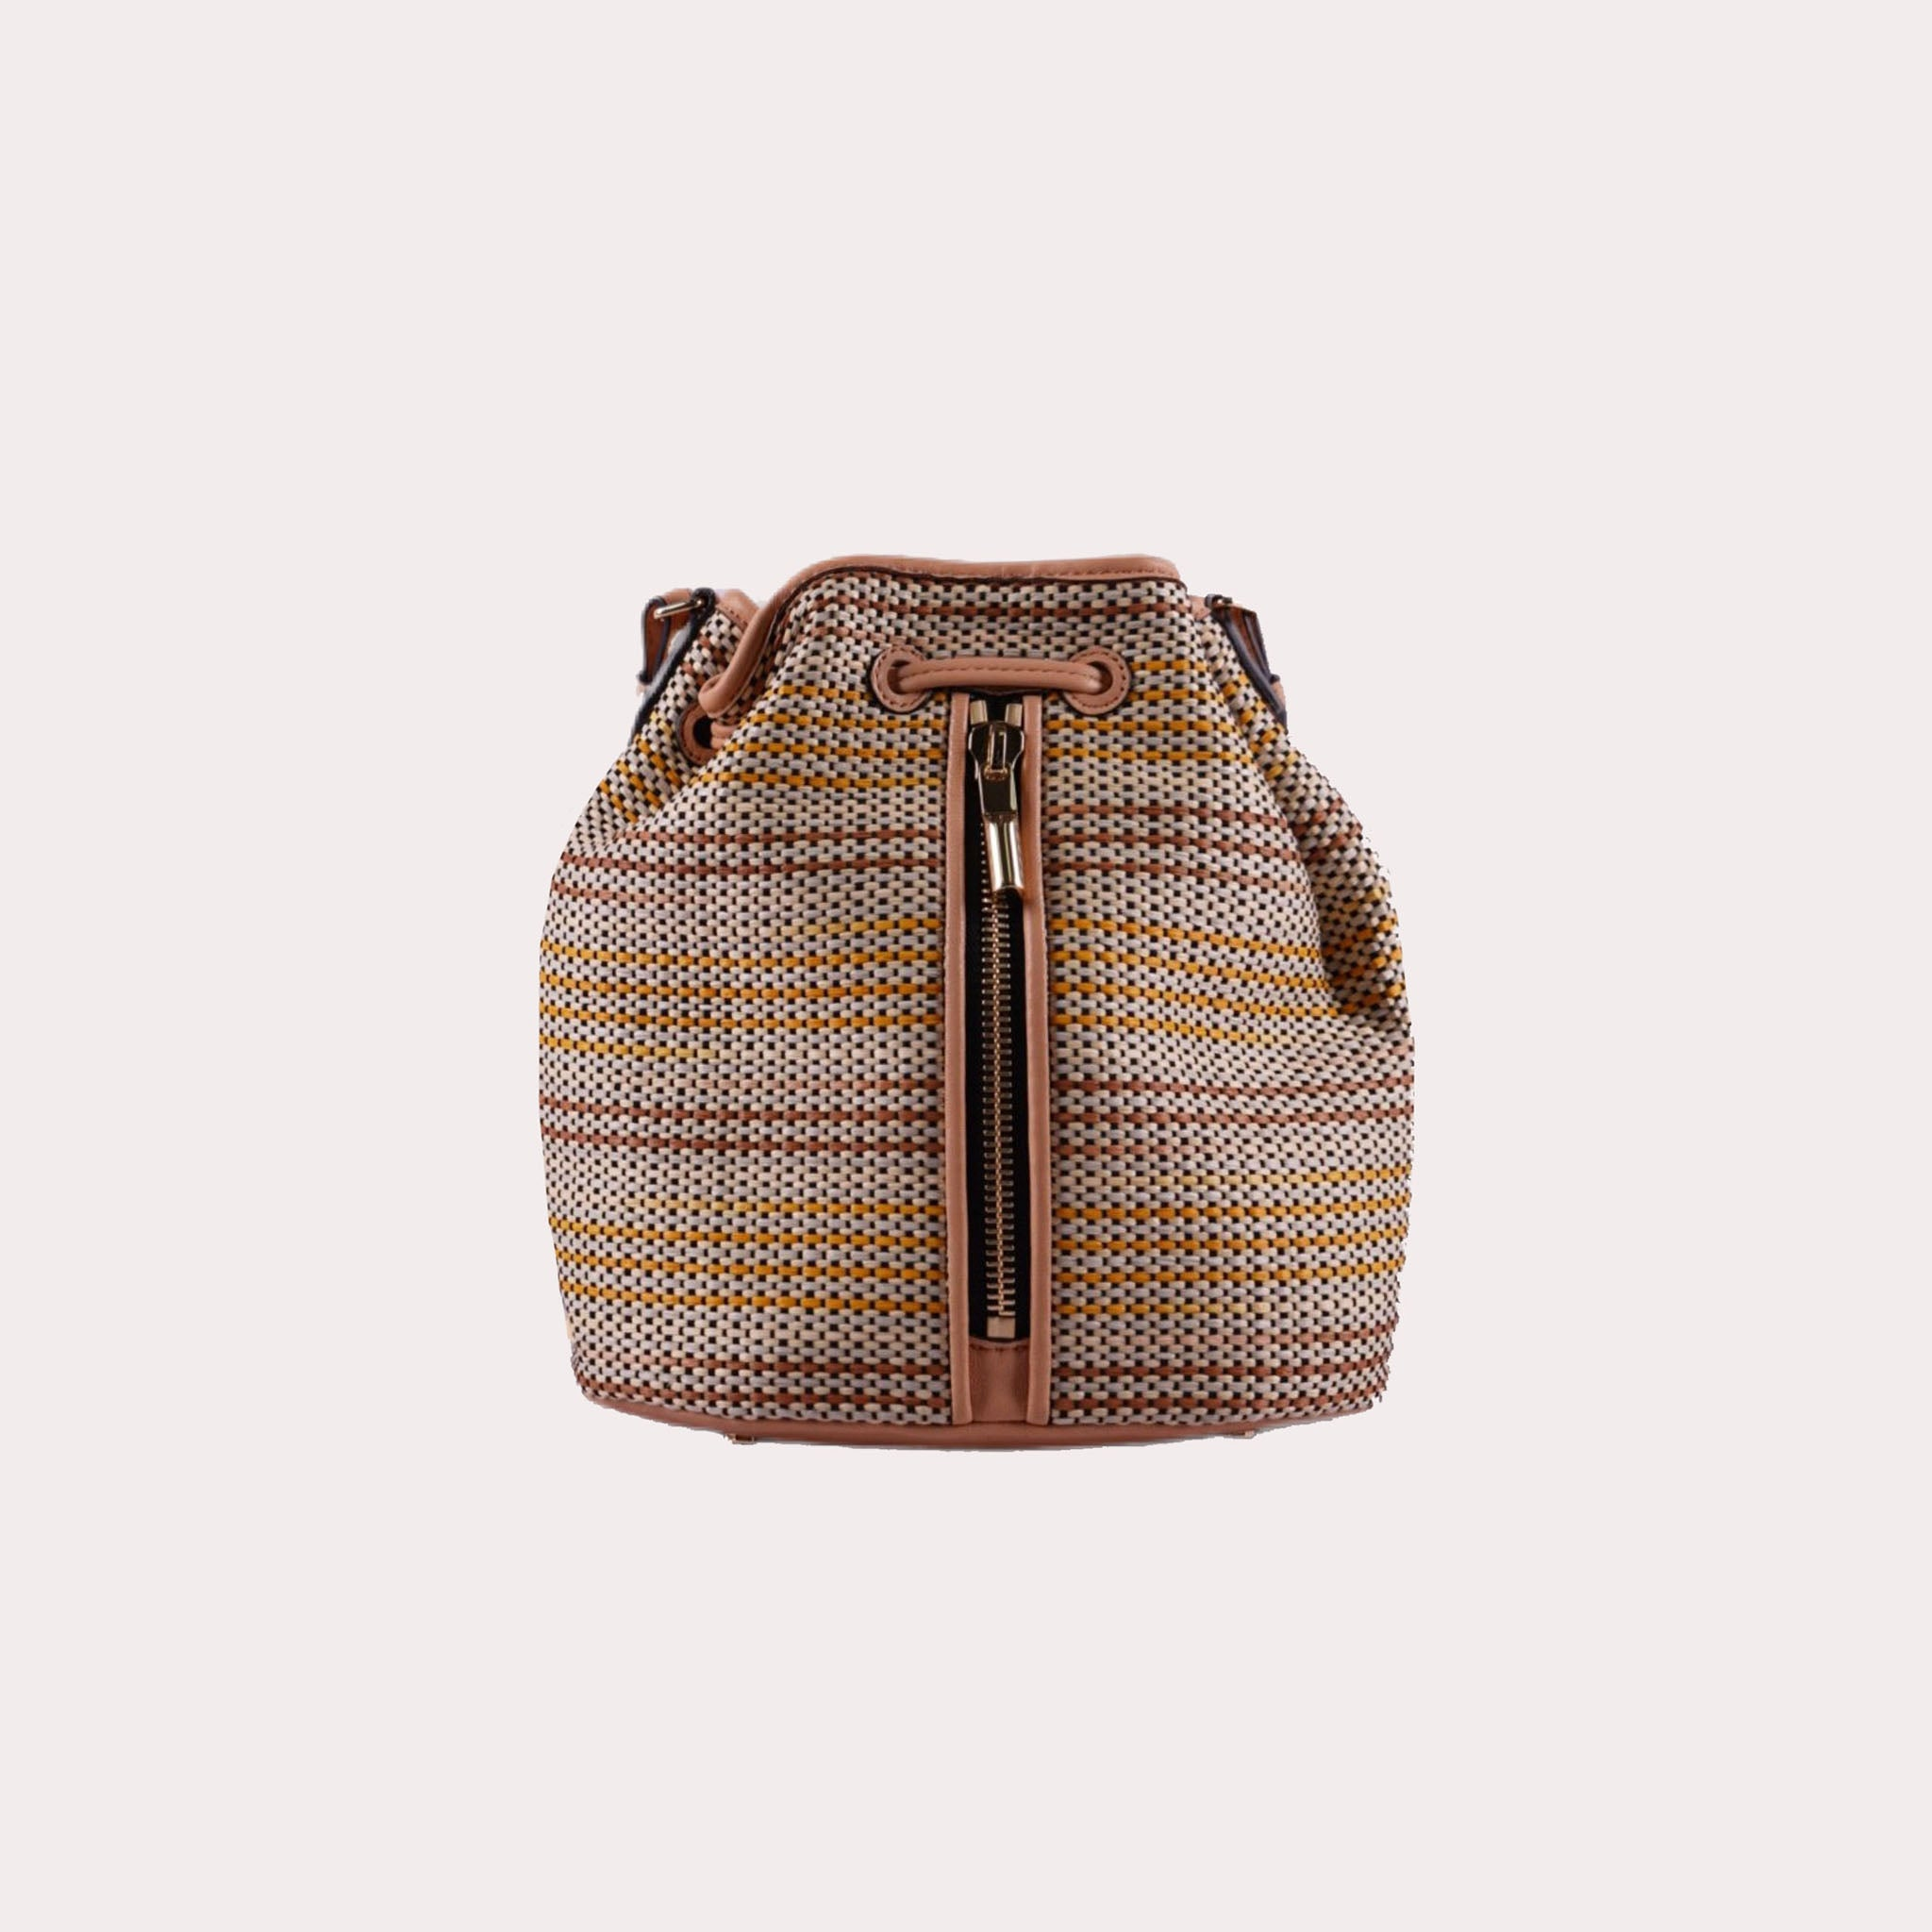 Cynnie Mini Bucket Bag with Front Zipper